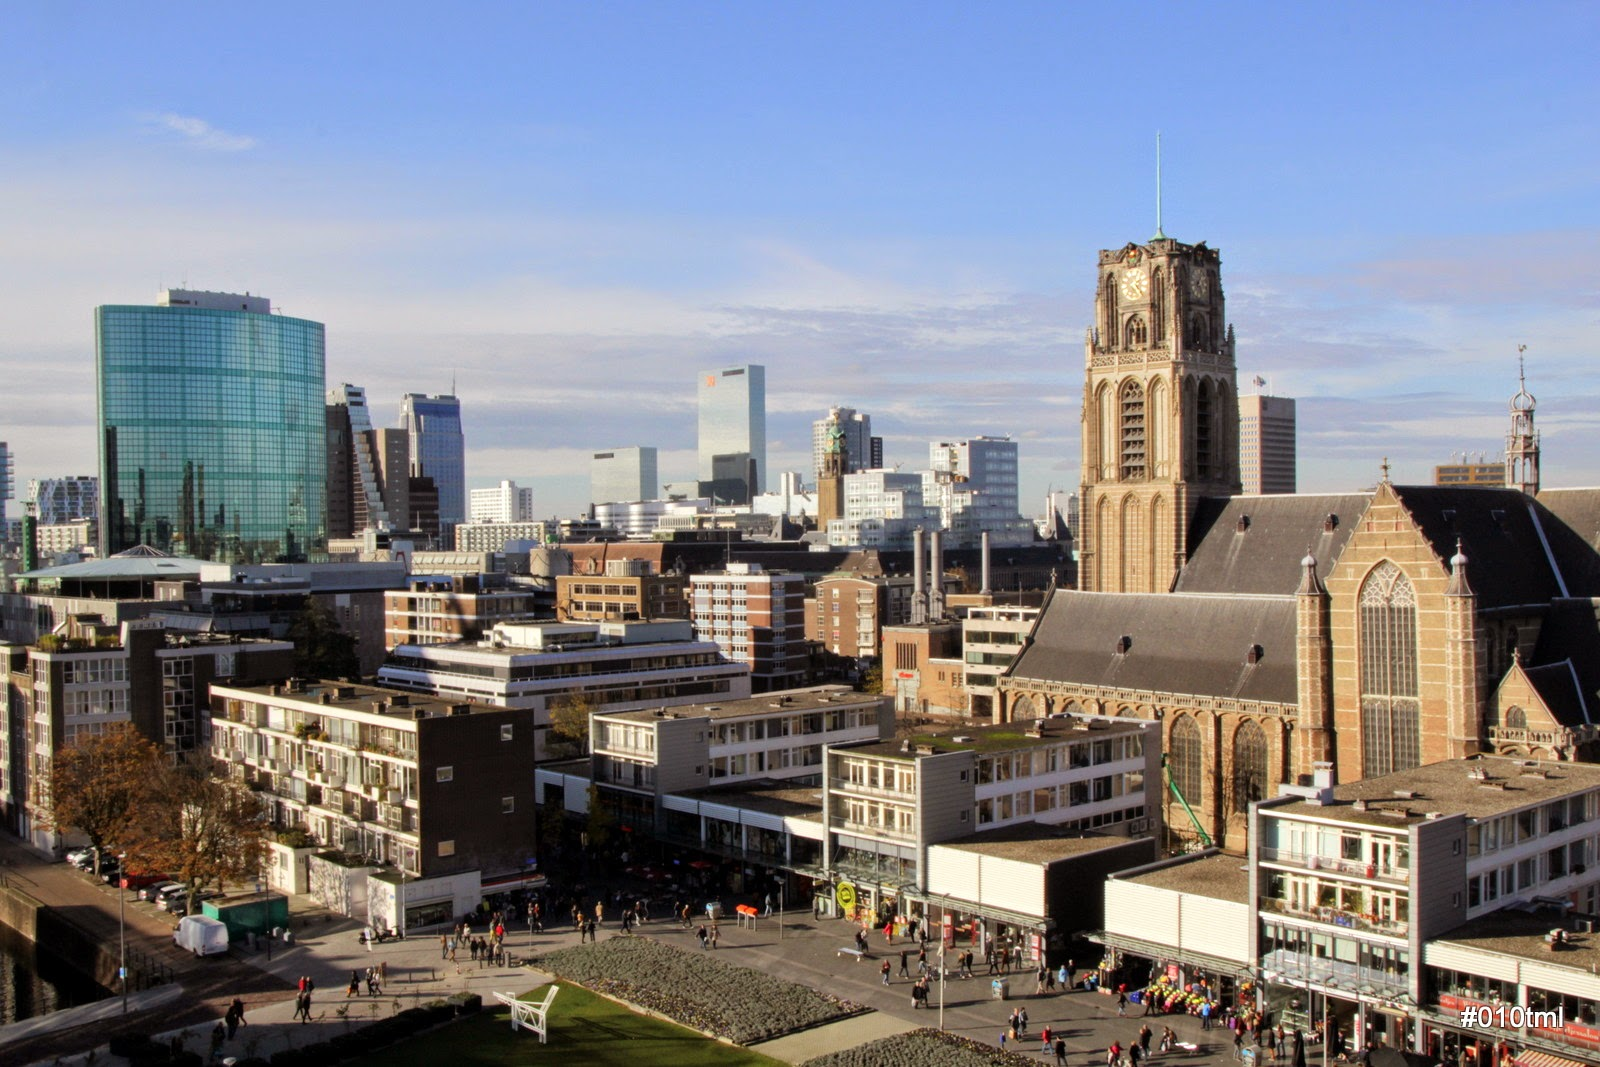 Rotterdam through my lens: Room with a view